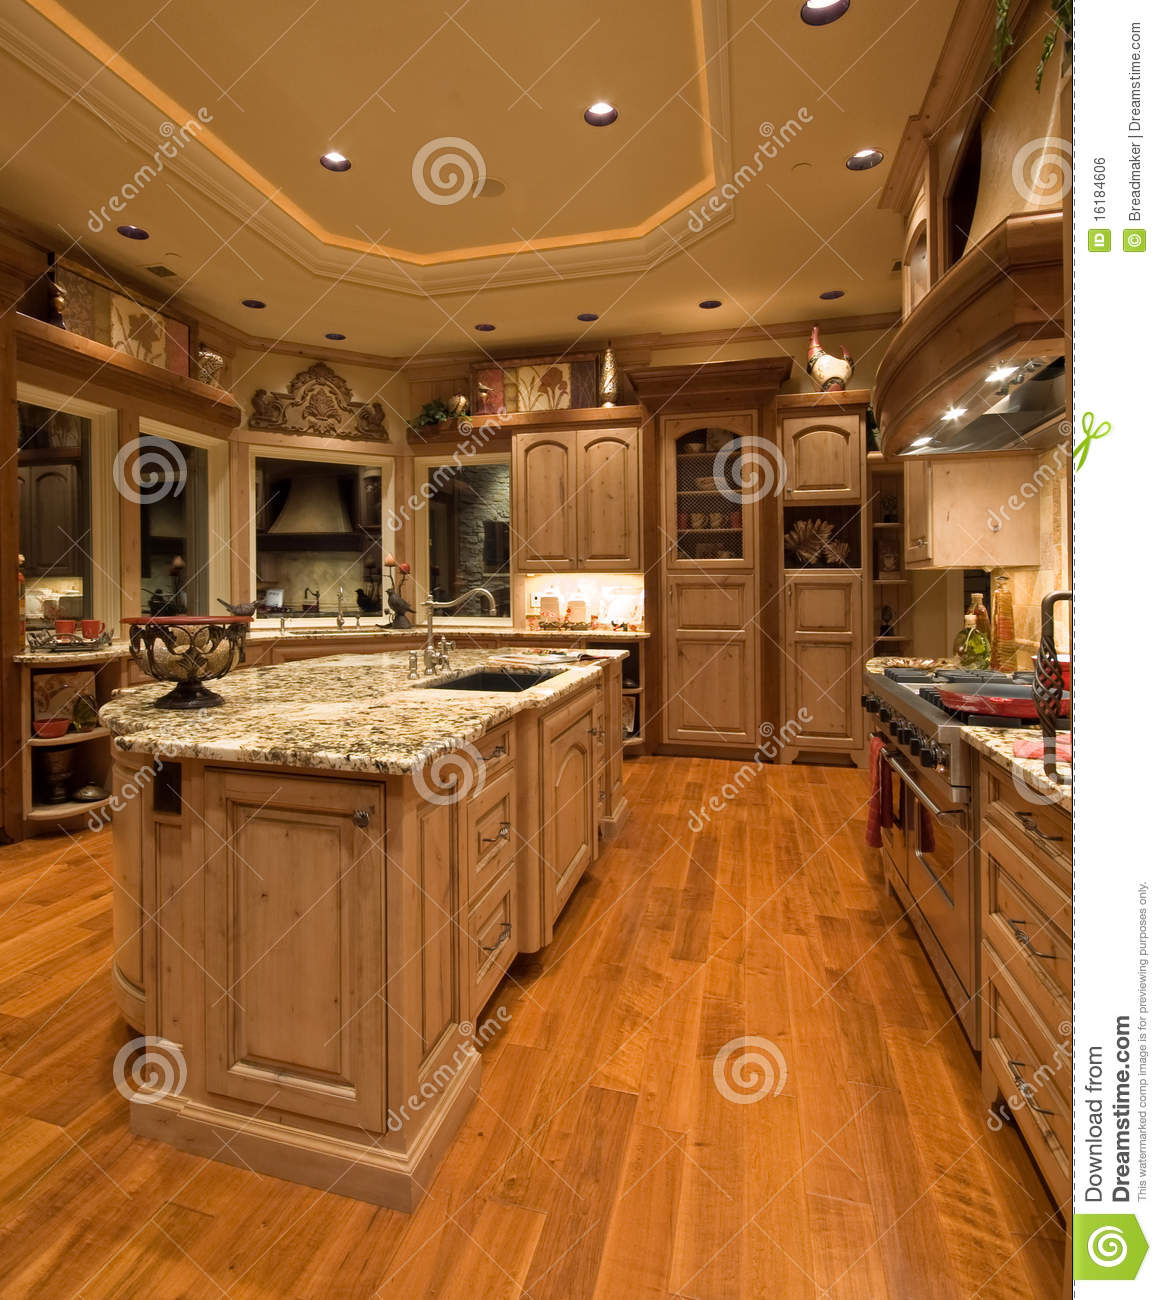 Luxury kitchen royalty free stock image image 16184606 for Luxury kitchen